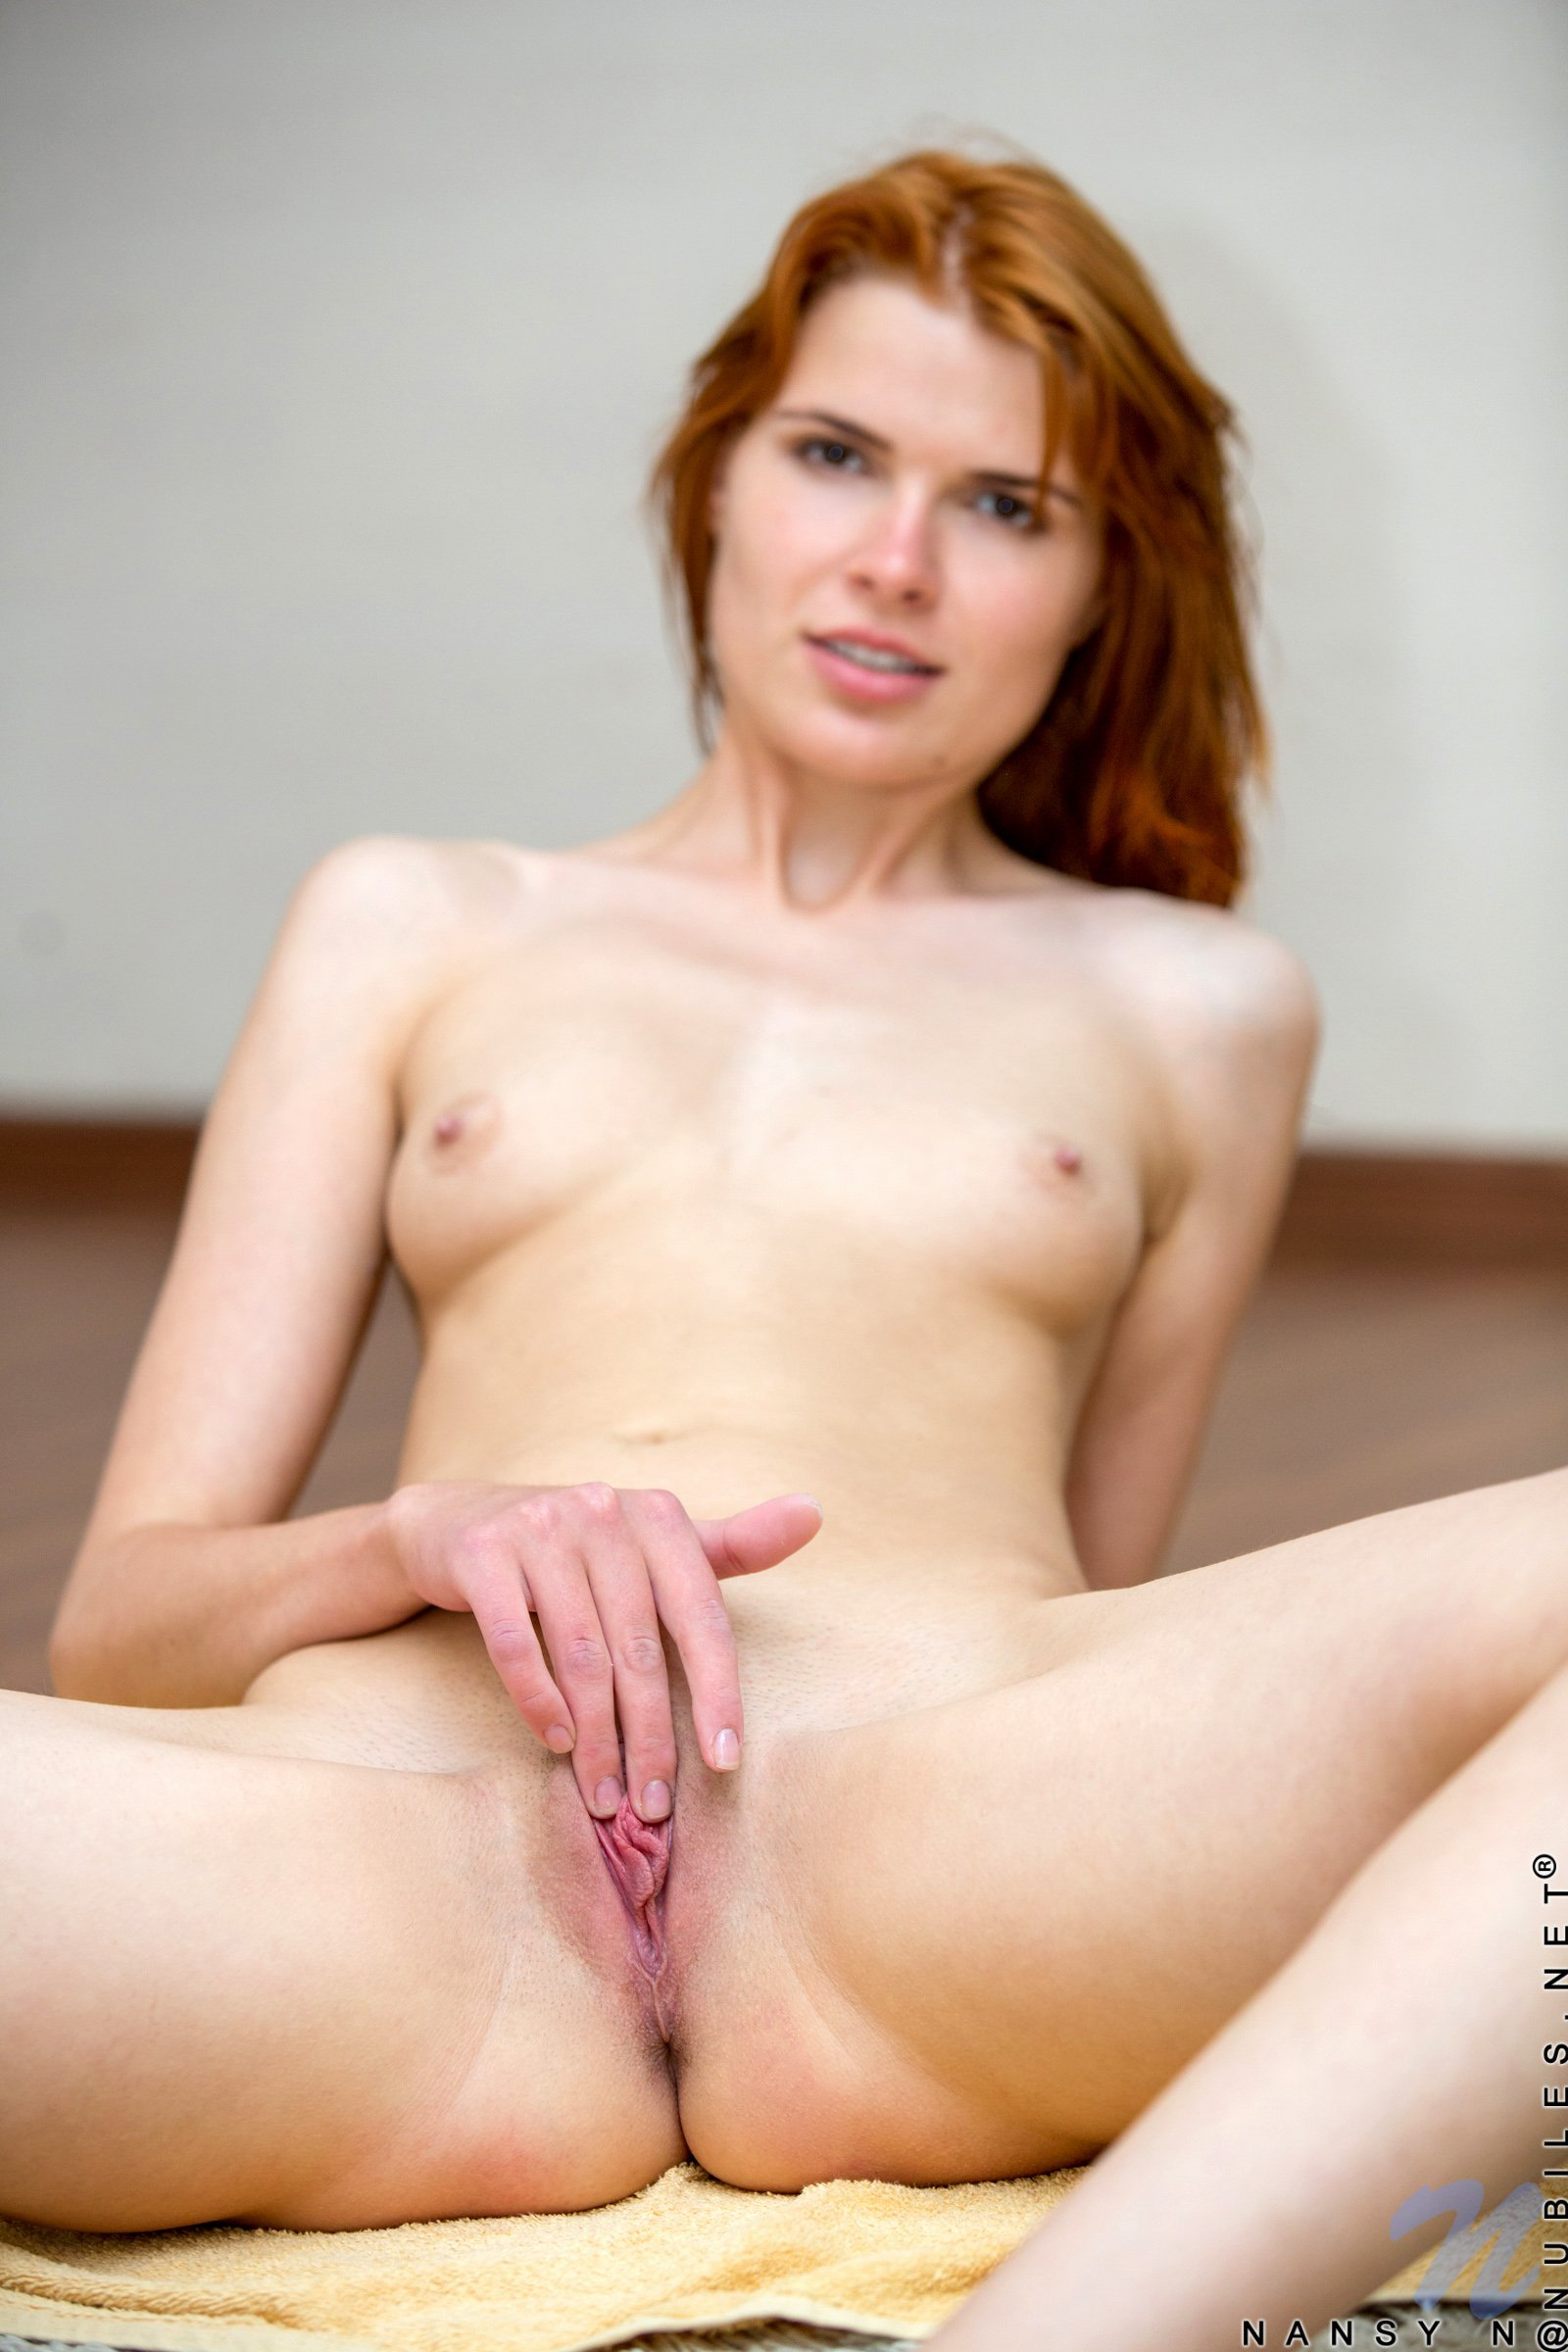 First time nude stories #5